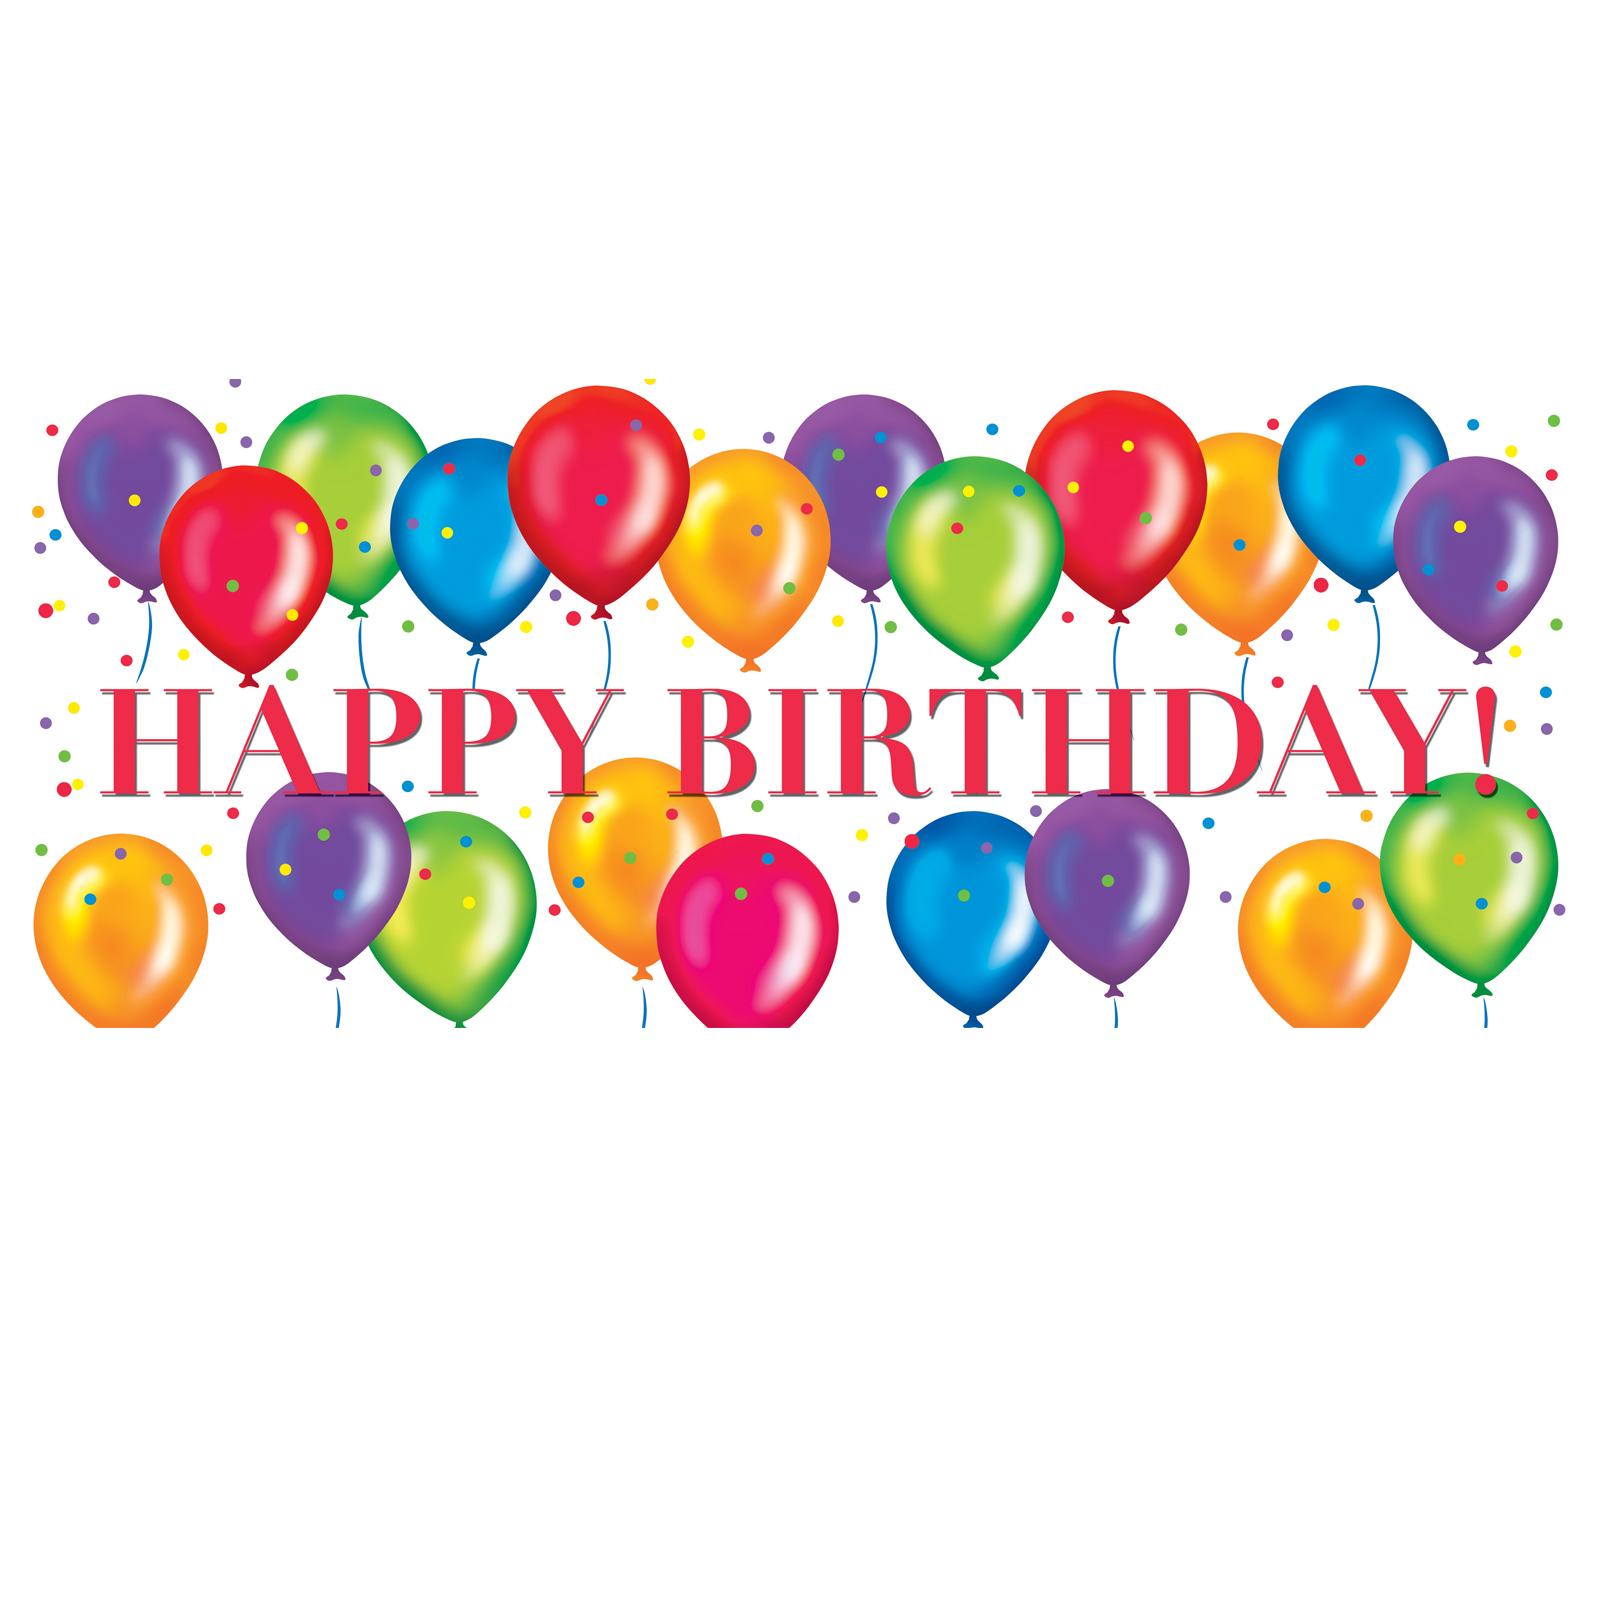 1600x1600 Image Of Birthday Border Clipart